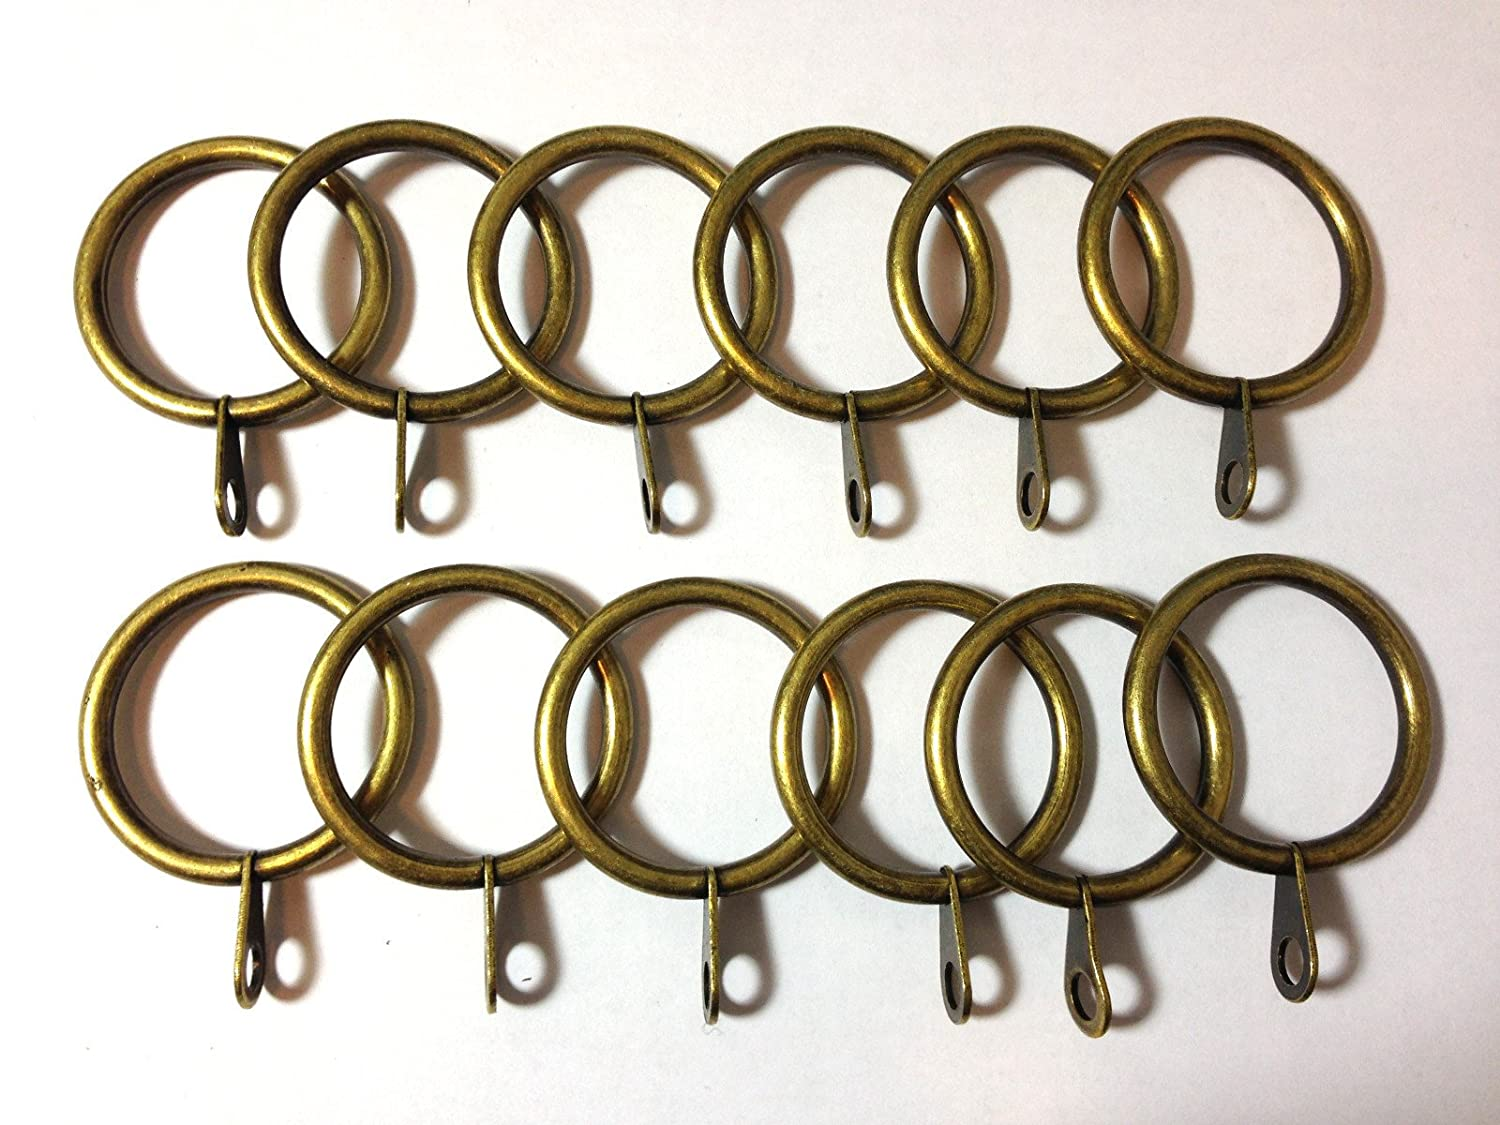 12x Satin Golden Metal Curtain Pole / Rail / Rod Stylish Rings for Clips Hanging SystemsEleven